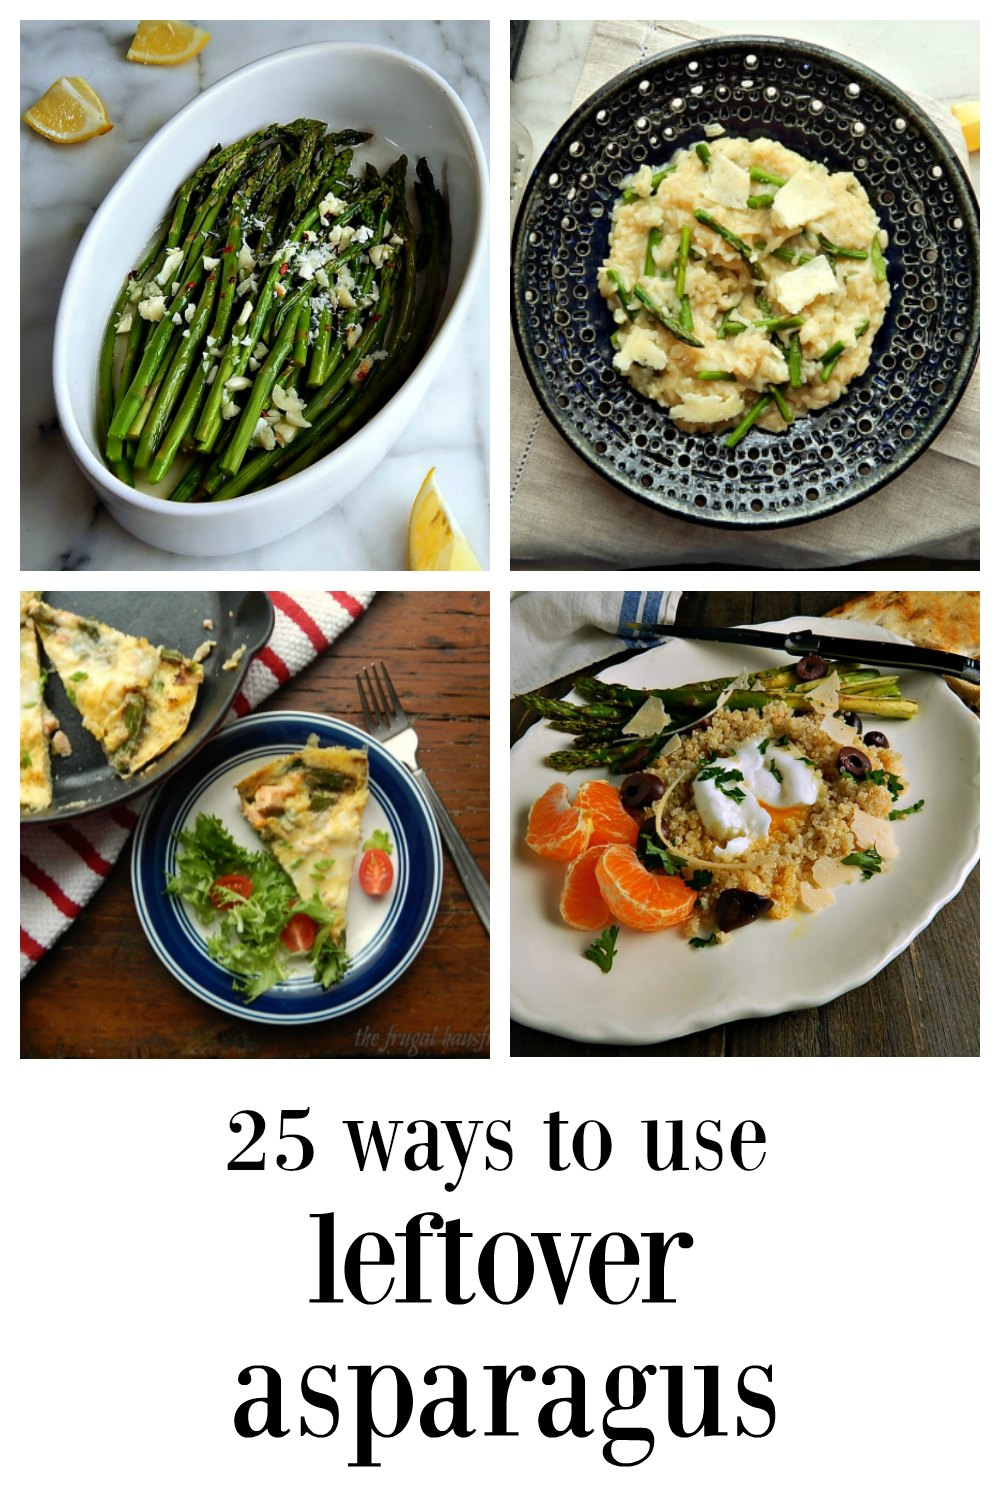 Leftover Asparagus and 25 ways to use it - plus a few ideas for the stems! No stupid slideshows, just a lot of great ideas! #LeftoverAsparagus #AsparagusRecipes #AsparagusLeftovers #WhatToDoWithLeftoverAsparagus #HowToUseAsparagusStems